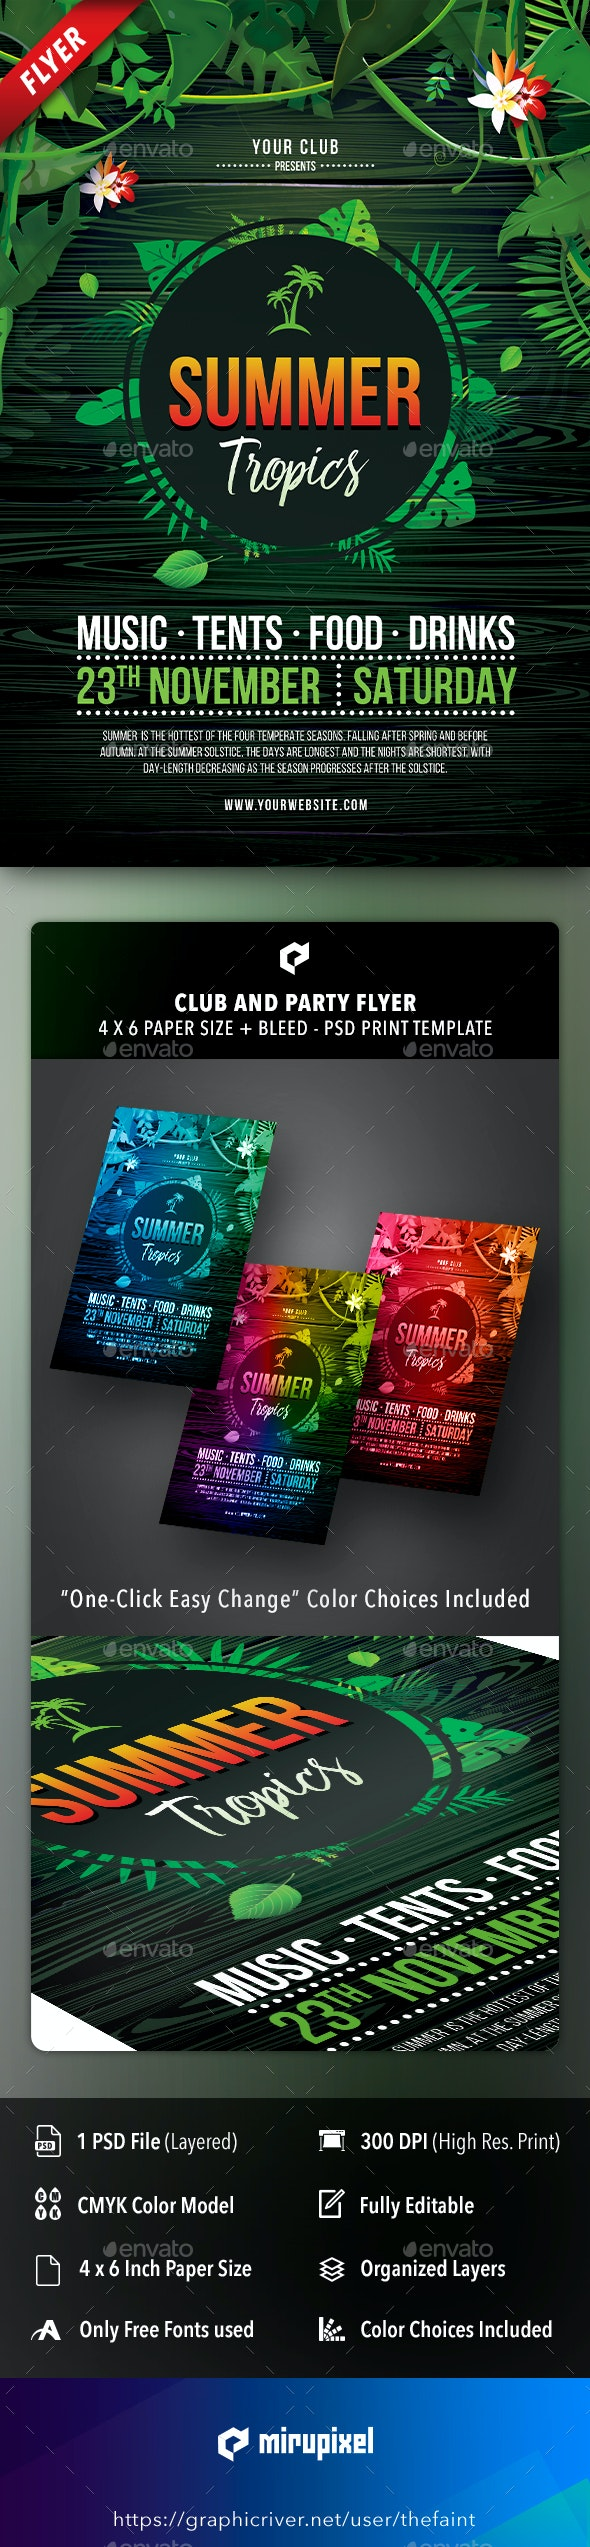 Summer Tropics Club and Party Flyer - Clubs & Parties Events